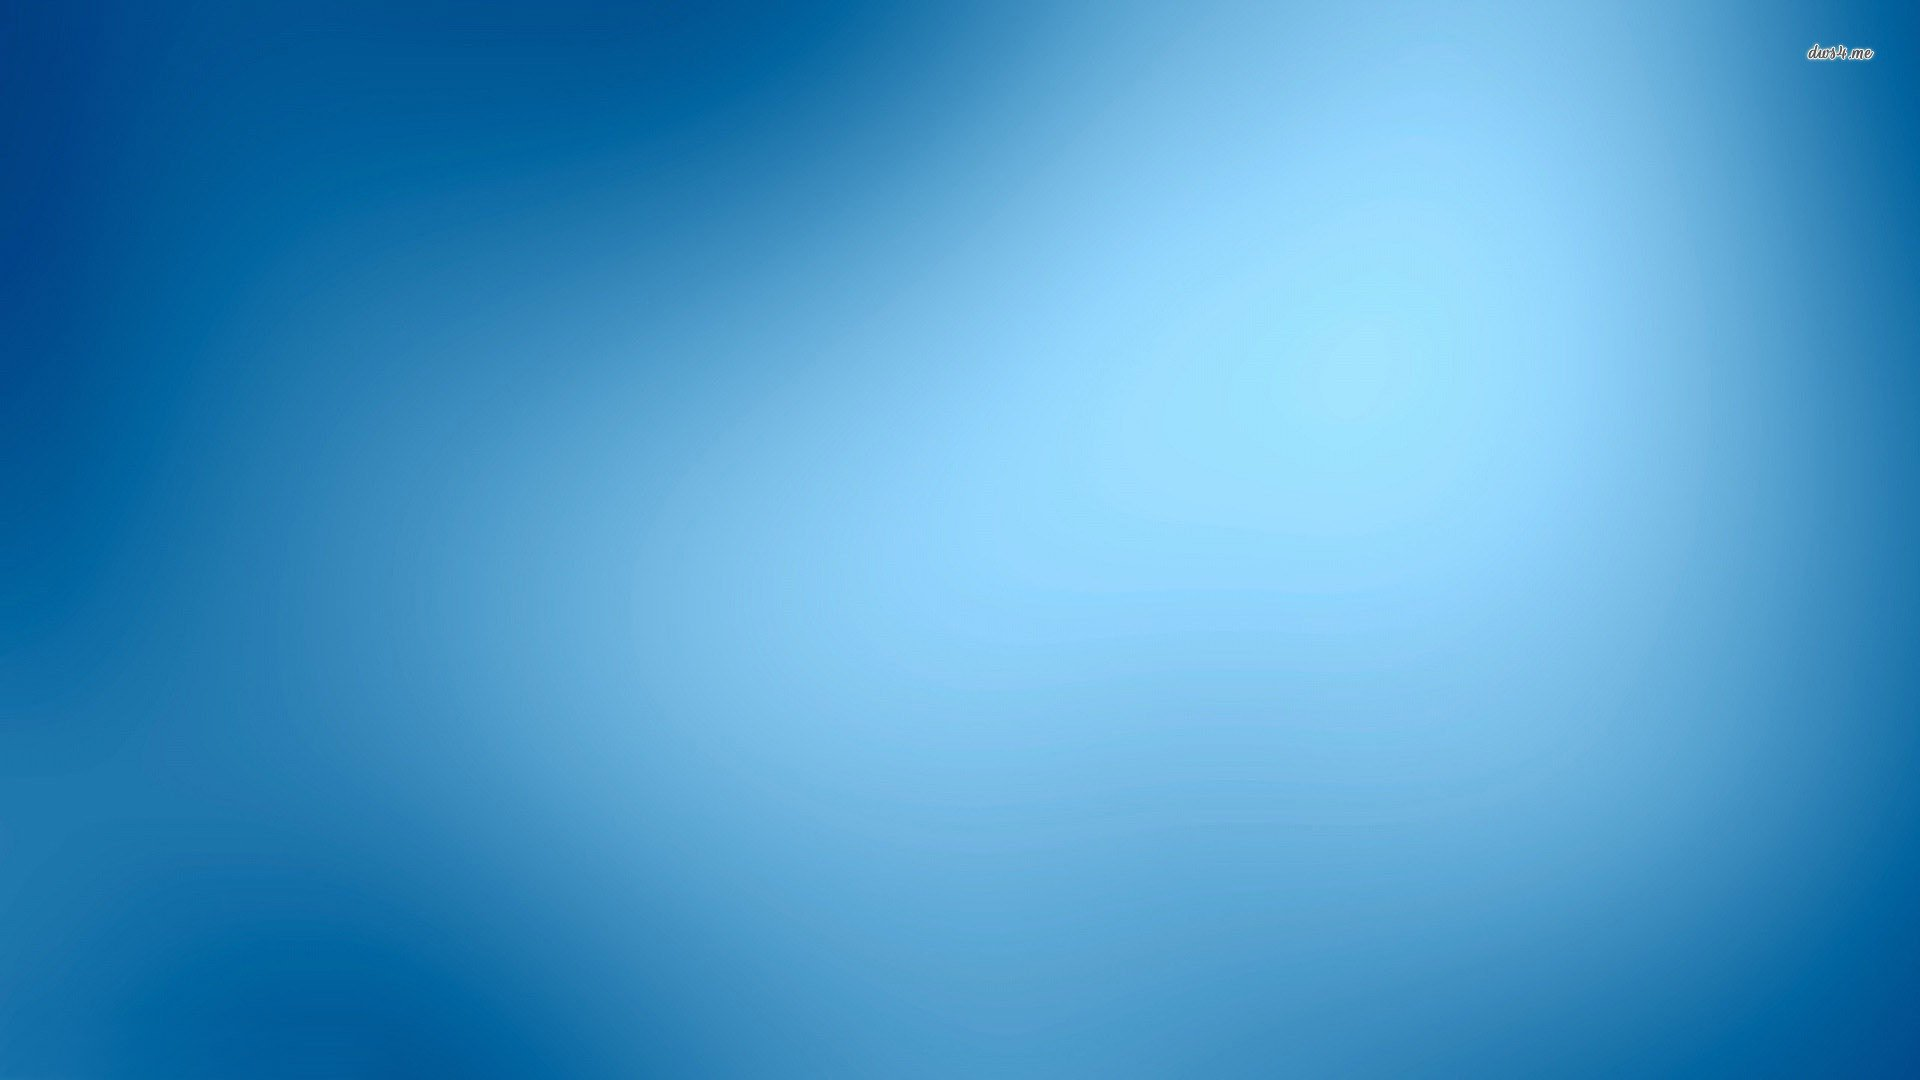 Blue gradient wallpaper 1280x800 Blue gradient wallpaper 1366x768 Blue 1920x1080